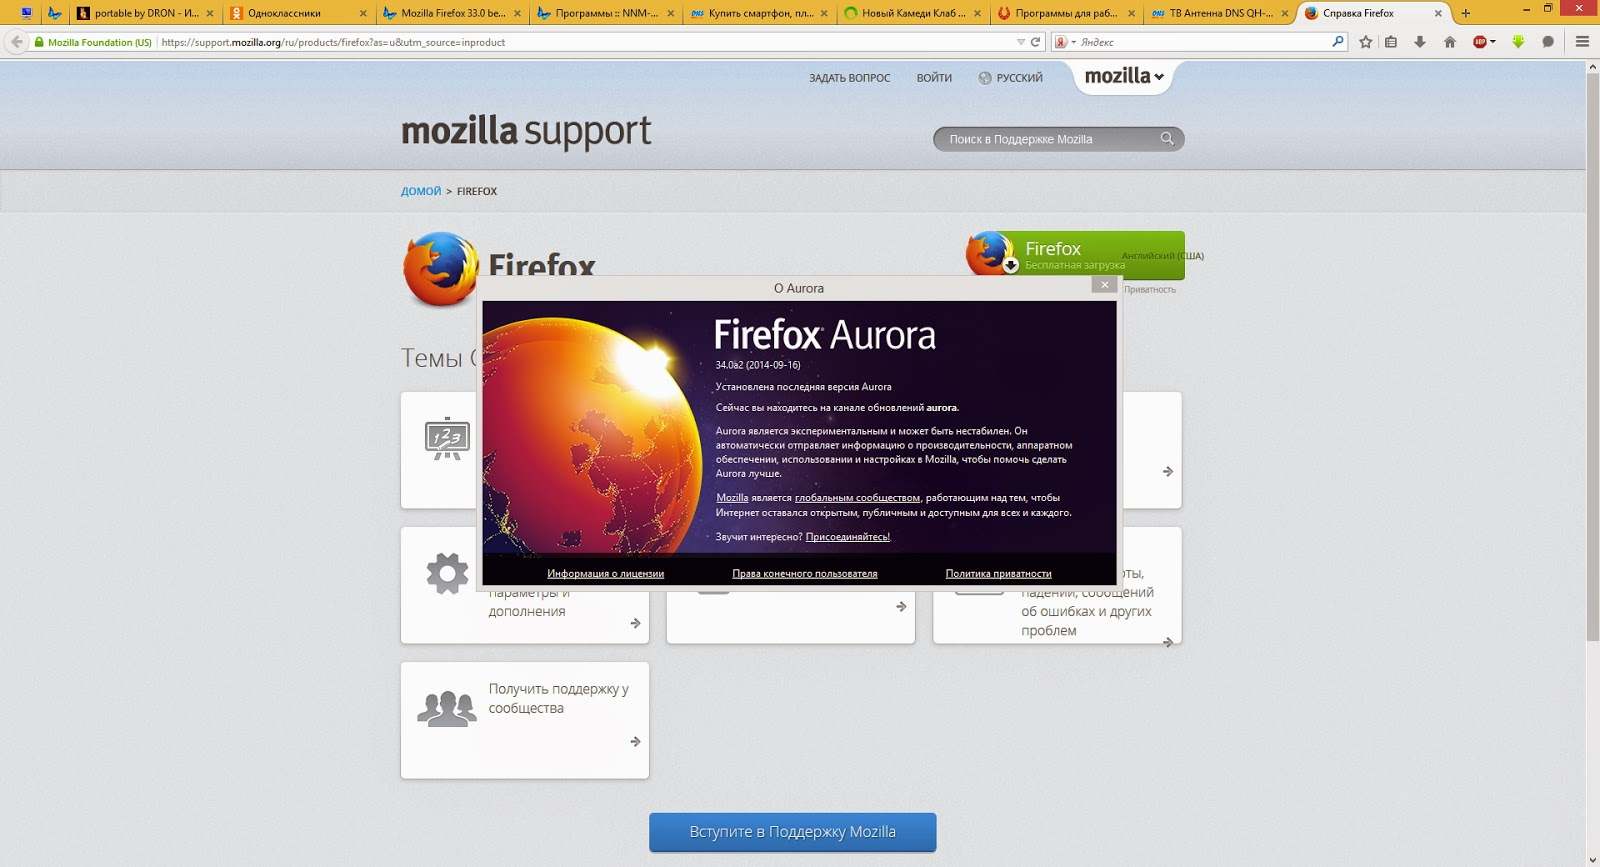 Firefox 38 download for windows 10